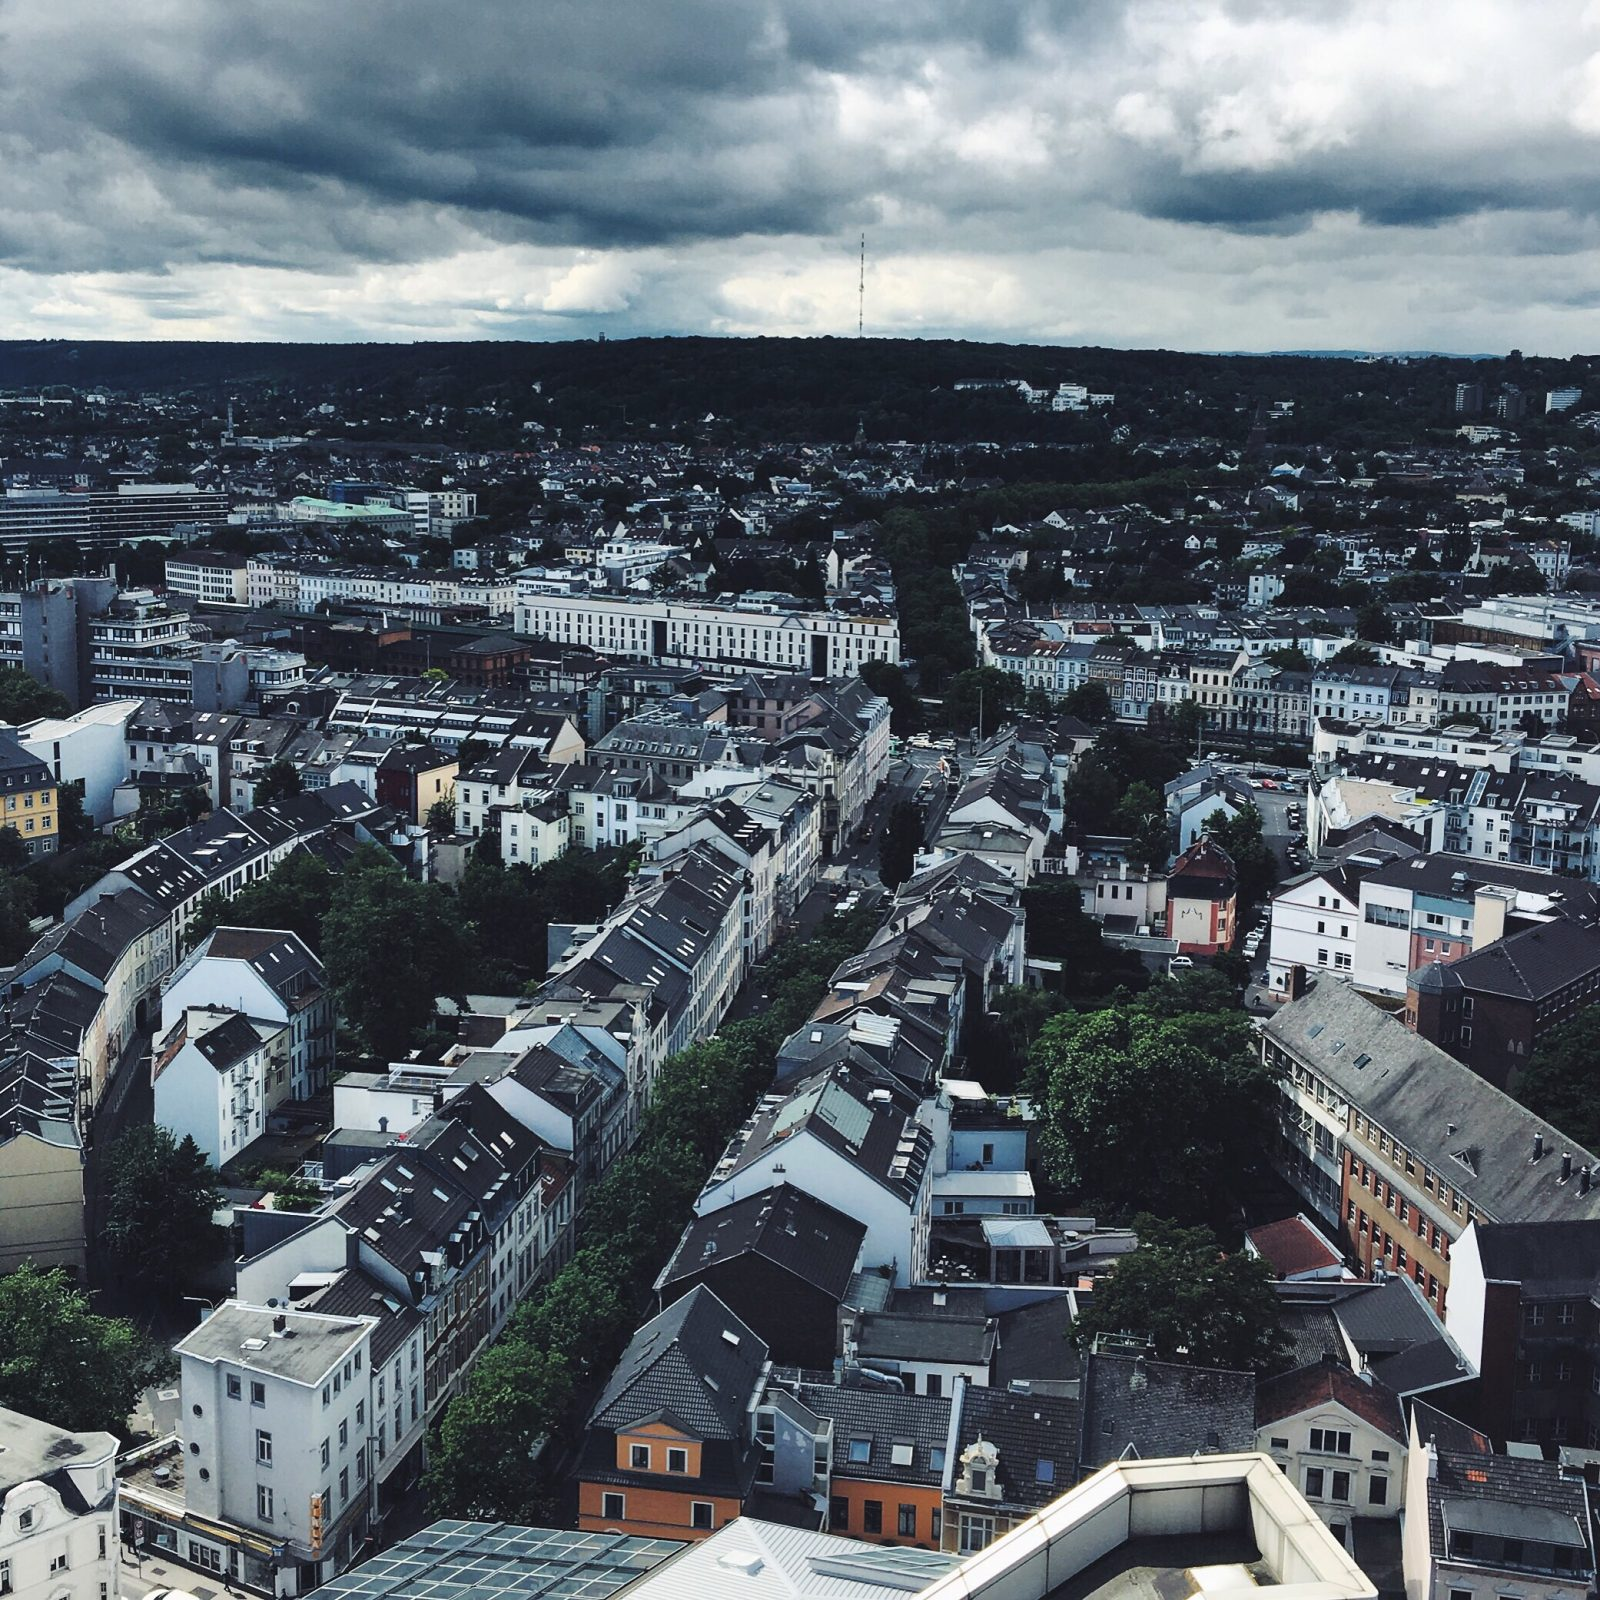 The view over Bonn from Stadthaus